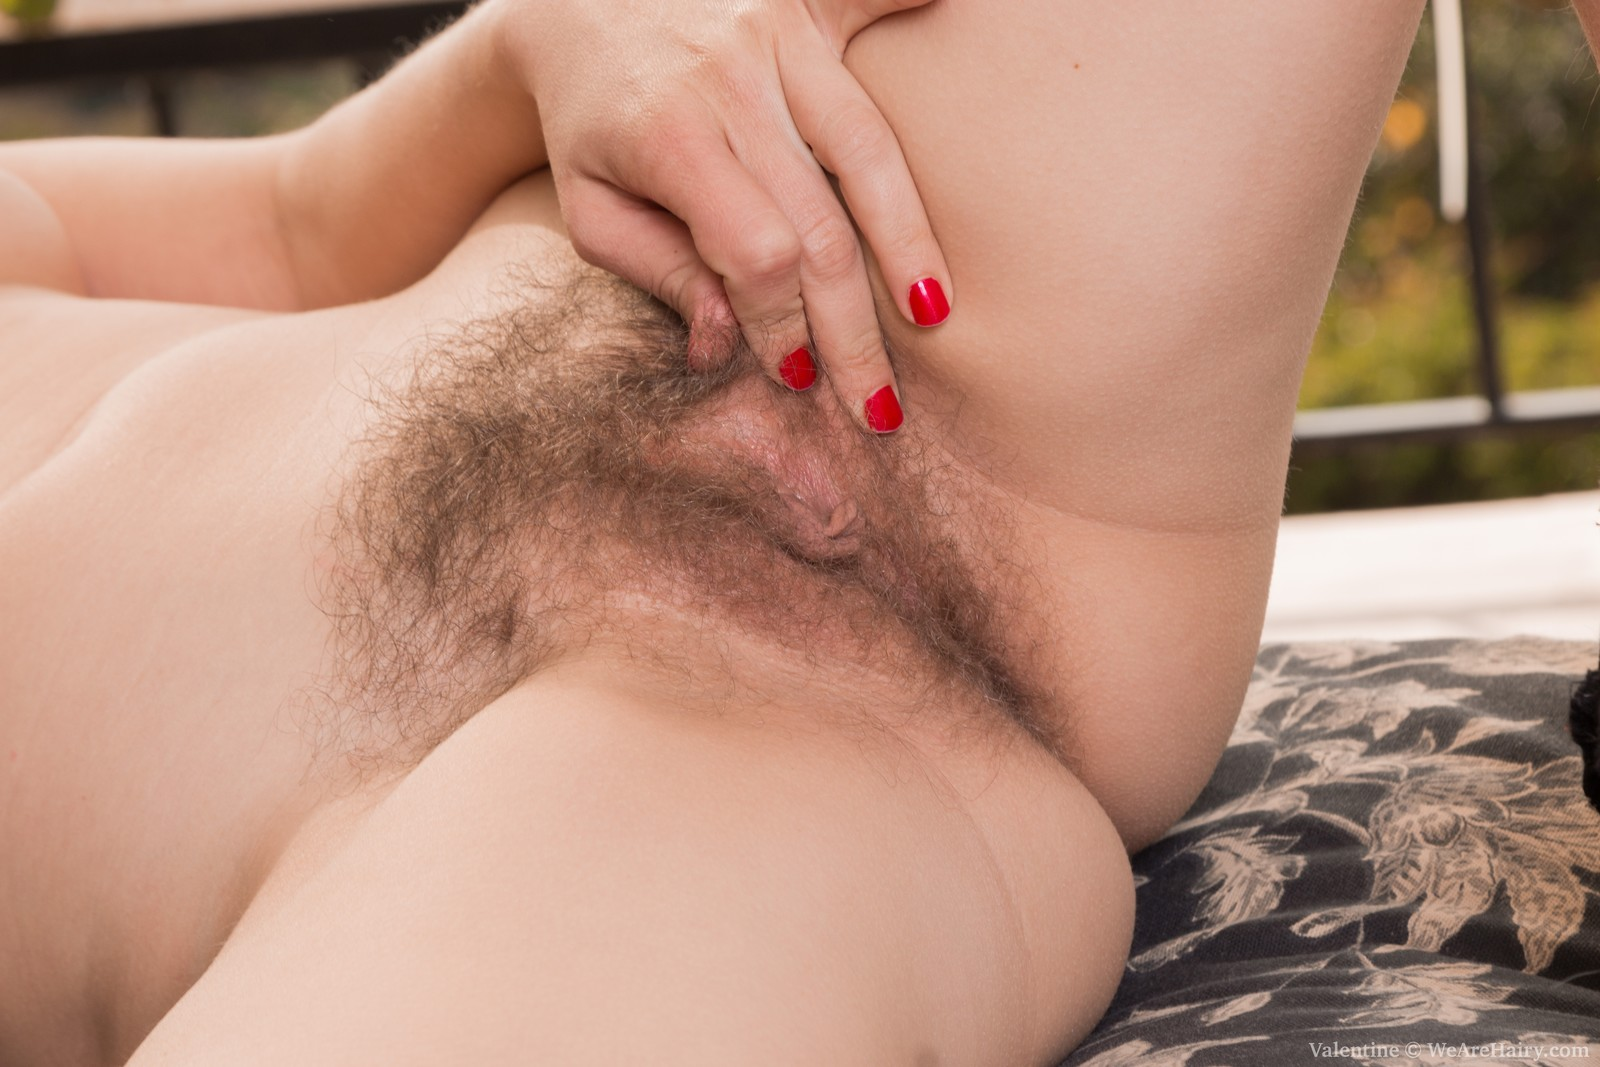 valentine-is-laying-on-her-lounge-chair-on-her-balcony-and-stroking-her-hairy-pits-and-hairy-bush.-she-takes-it-all-off-and-strokes-her-pink-pussy-lips-and-bush.-she-smiles-and-enjoys-being-naked-for-us.11.jpg